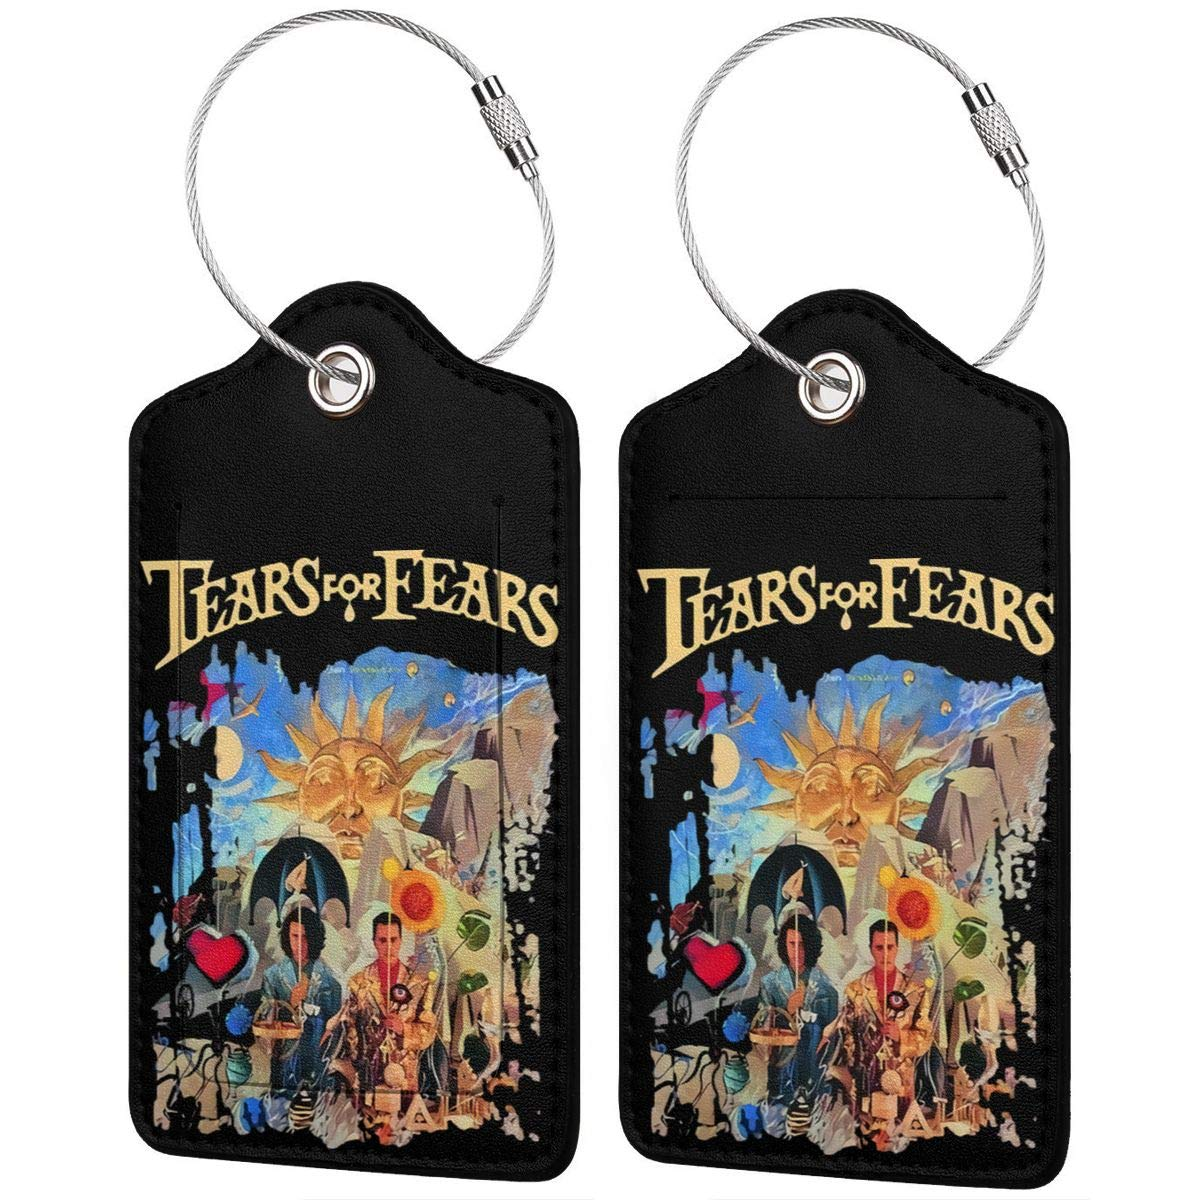 4 Kinds Of Specifications Tears-for-Fears-The-Seeds-of-Love Printed?Leather Luggage Tag /& Bag Tag With Privacy Cover